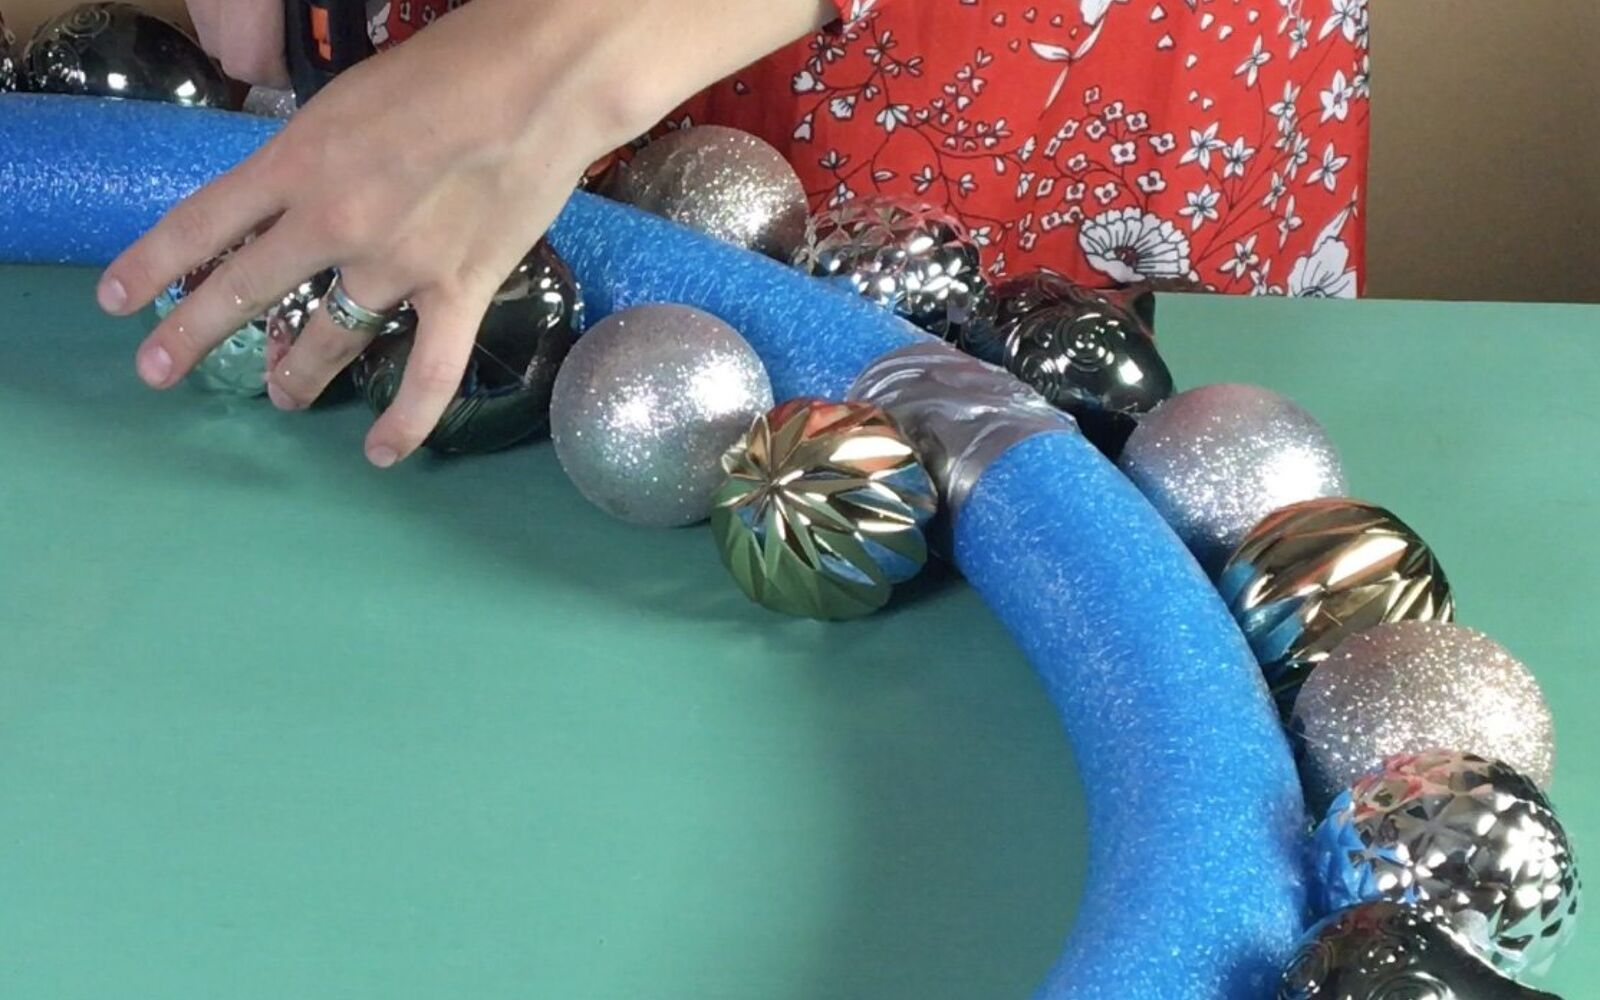 s 3 wreath ideas to brighten up your front door, Step 4 Hot glue ornaments to the inner edge